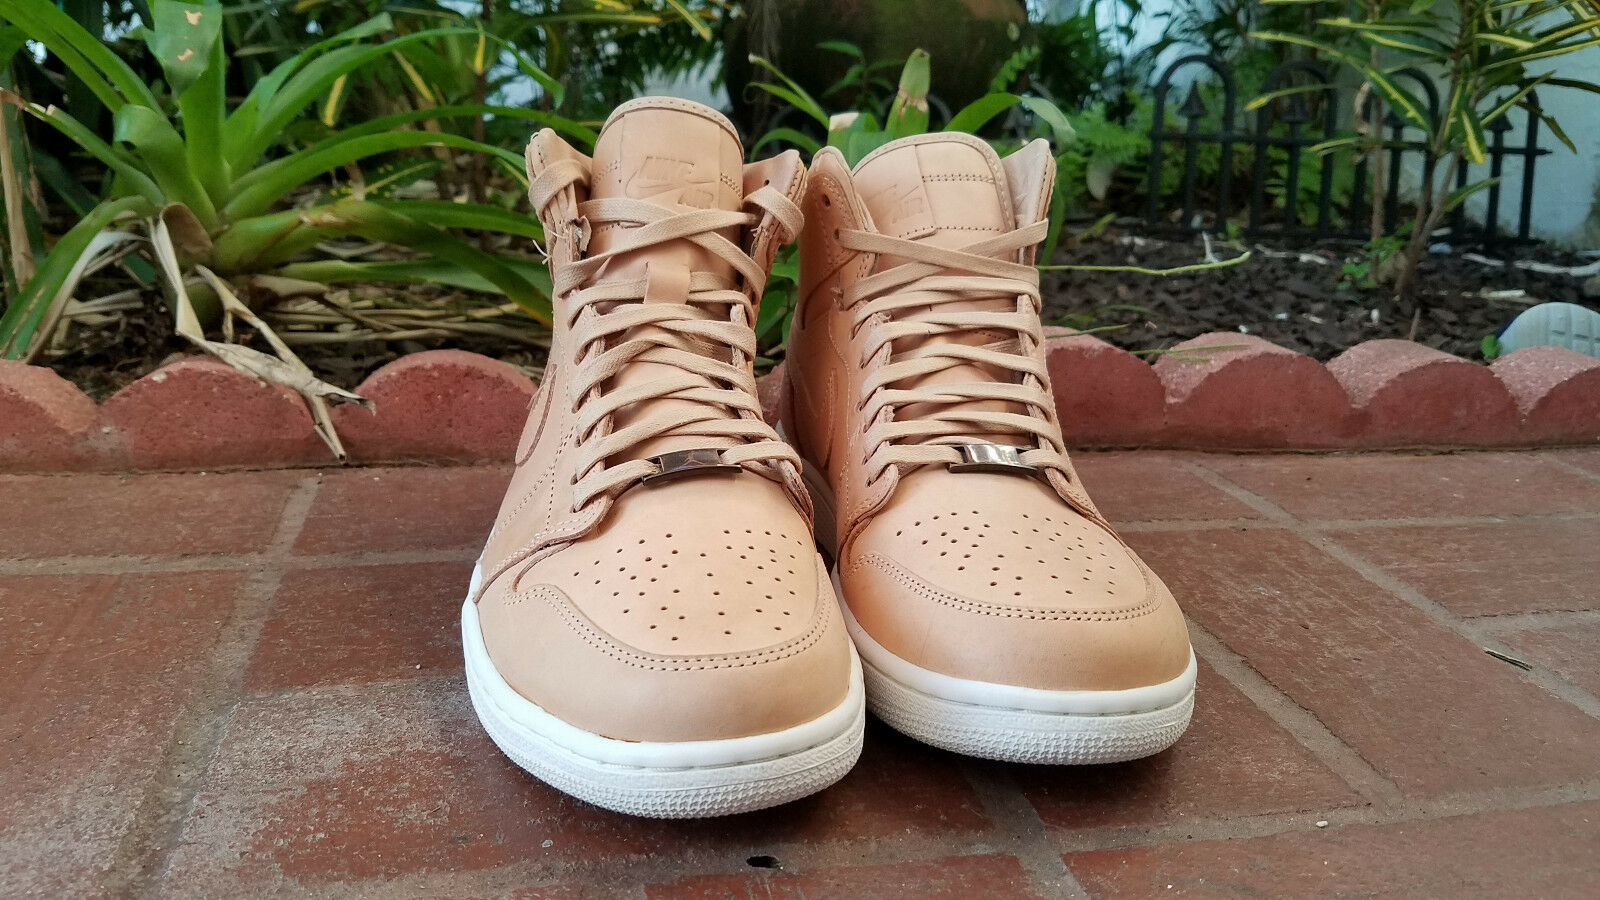 Mens Nike Air Jordan I 1 Pinnacle High OG Sail Vachetta tan white 705075 201 LUX